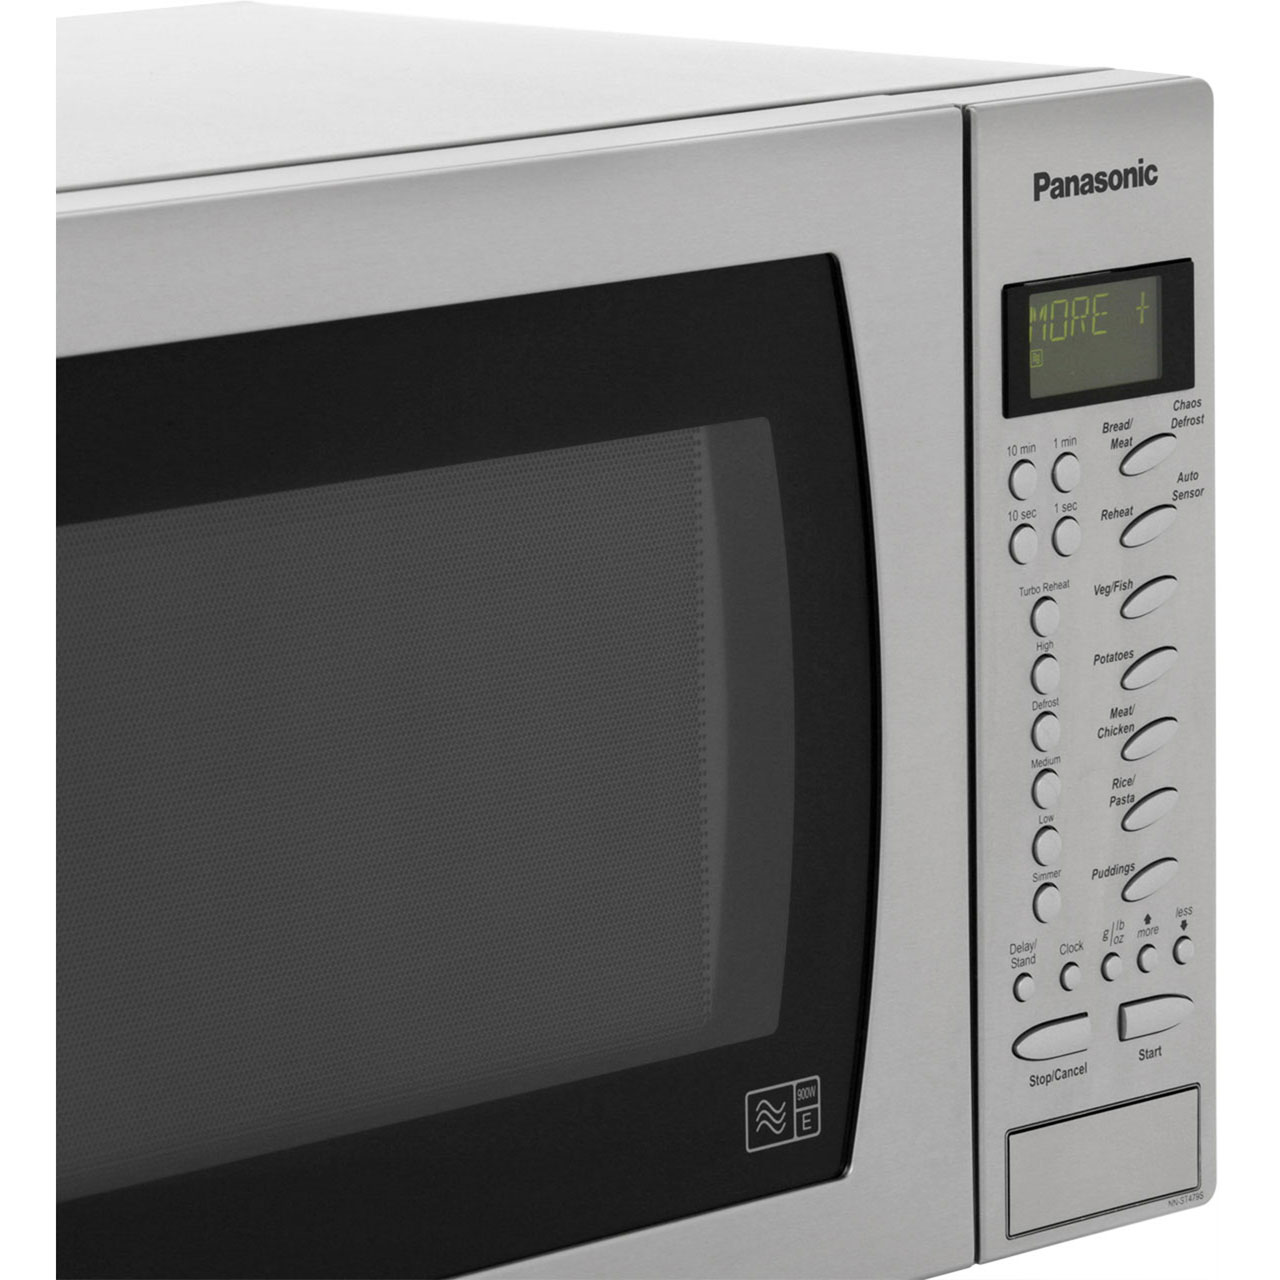 What is a microwave inverter?